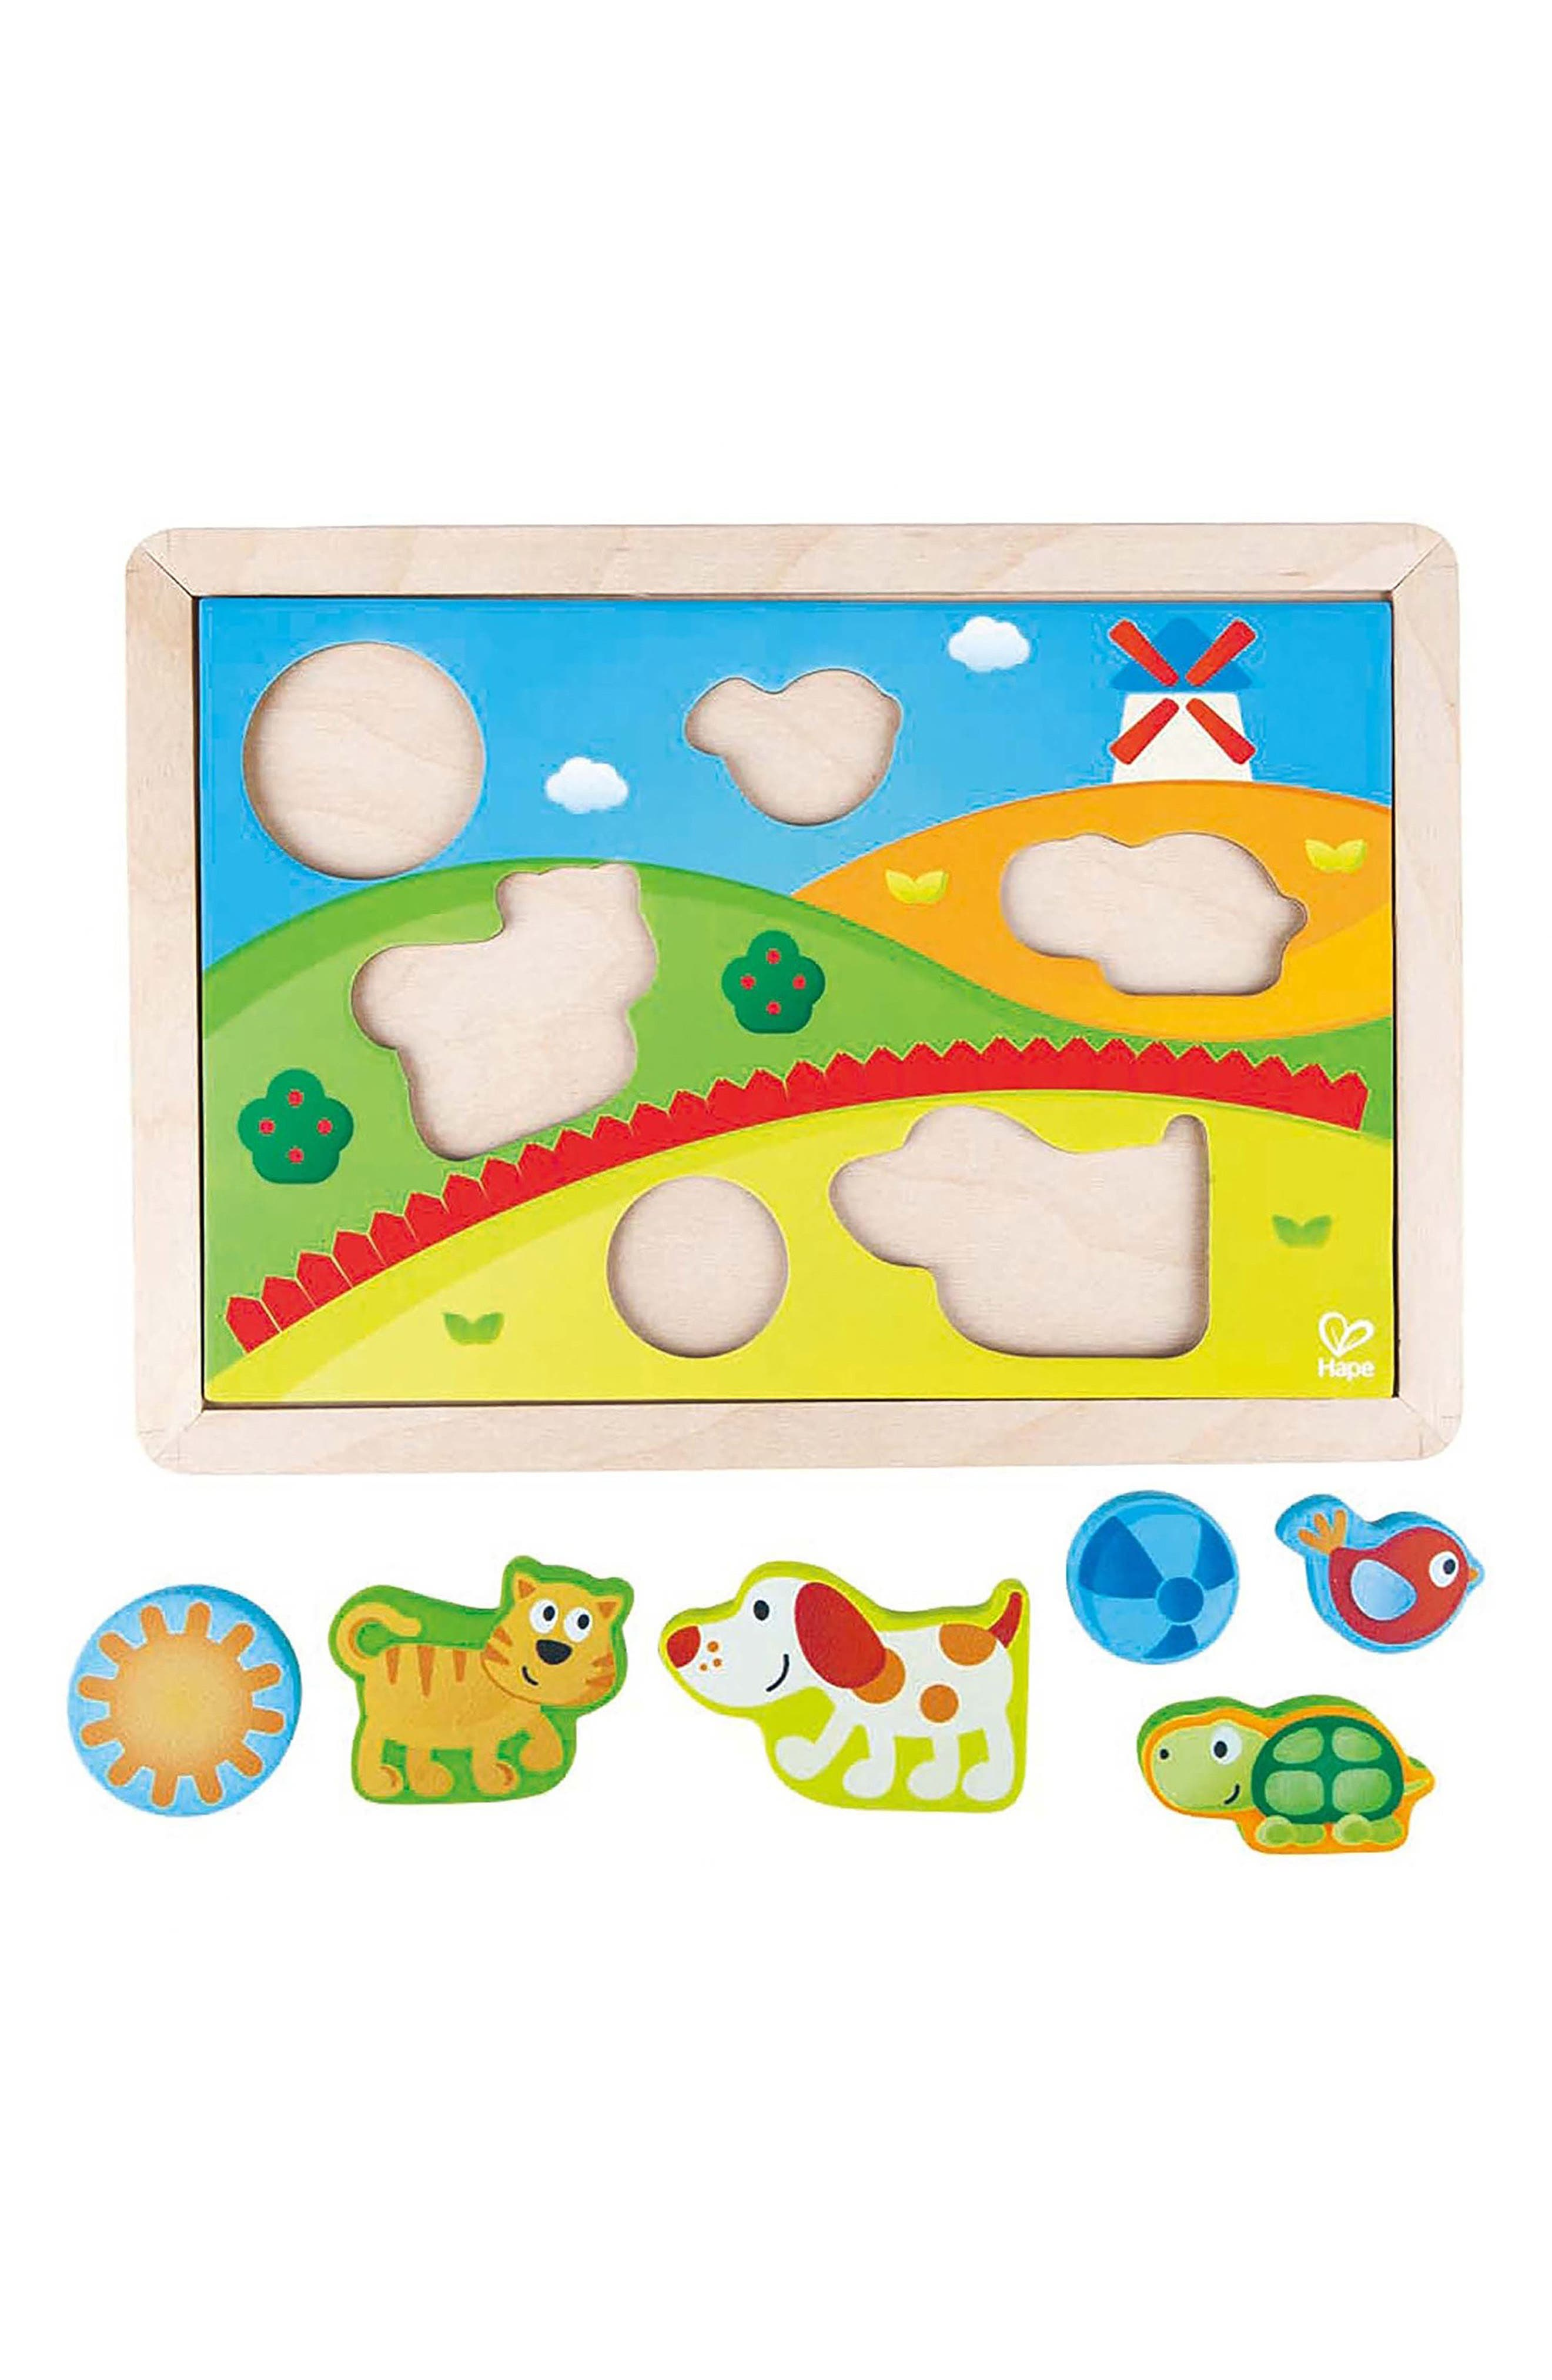 Sunny Valley 3-in-1 Puzzle,                             Alternate thumbnail 4, color,                             Multi